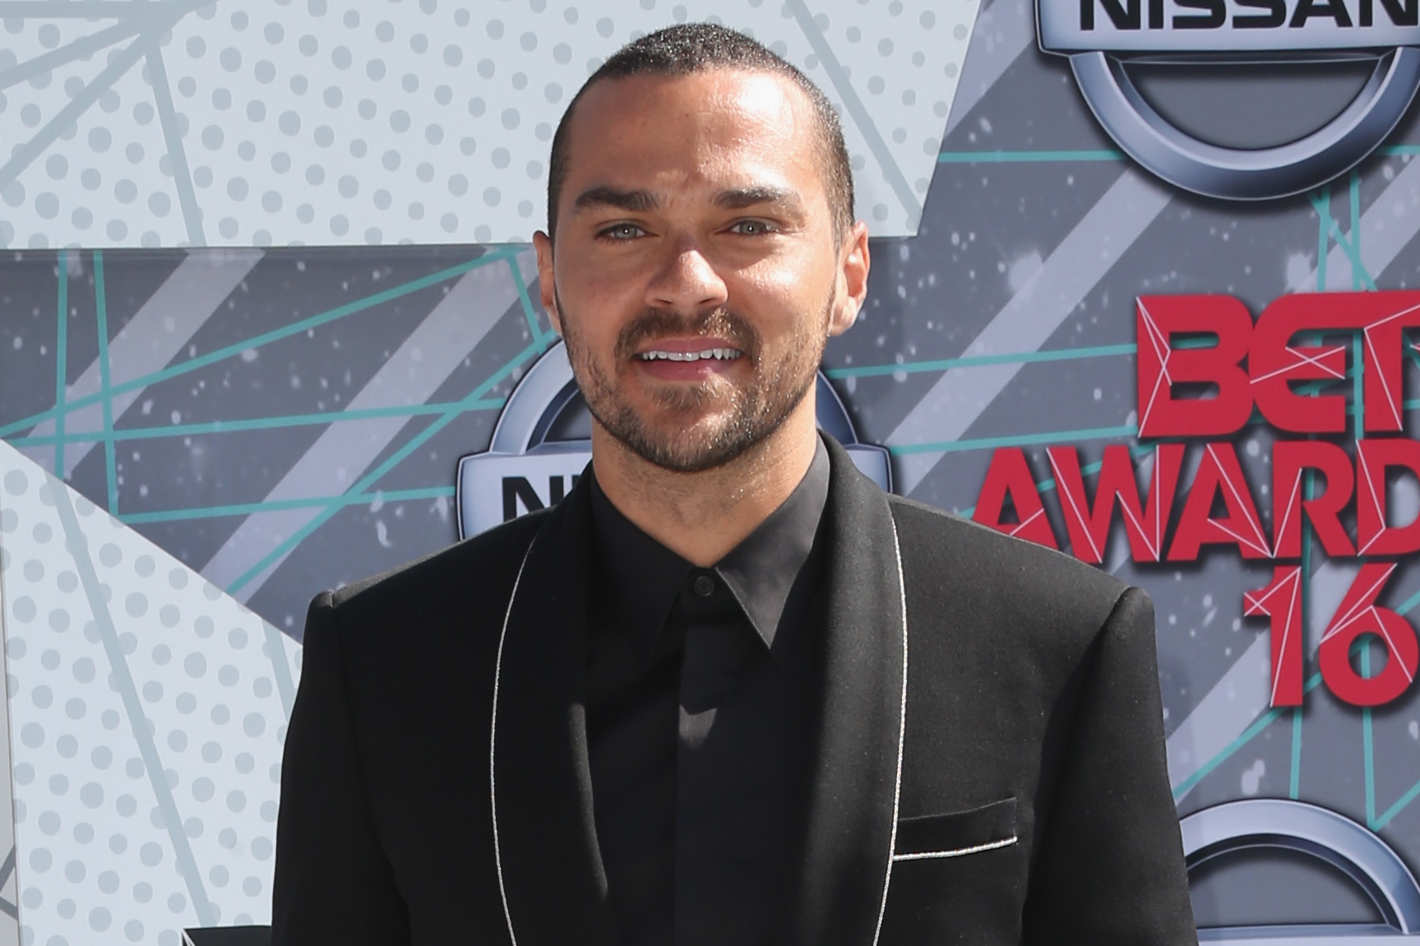 Jesse Williams smiling for a picture wearing a black suit